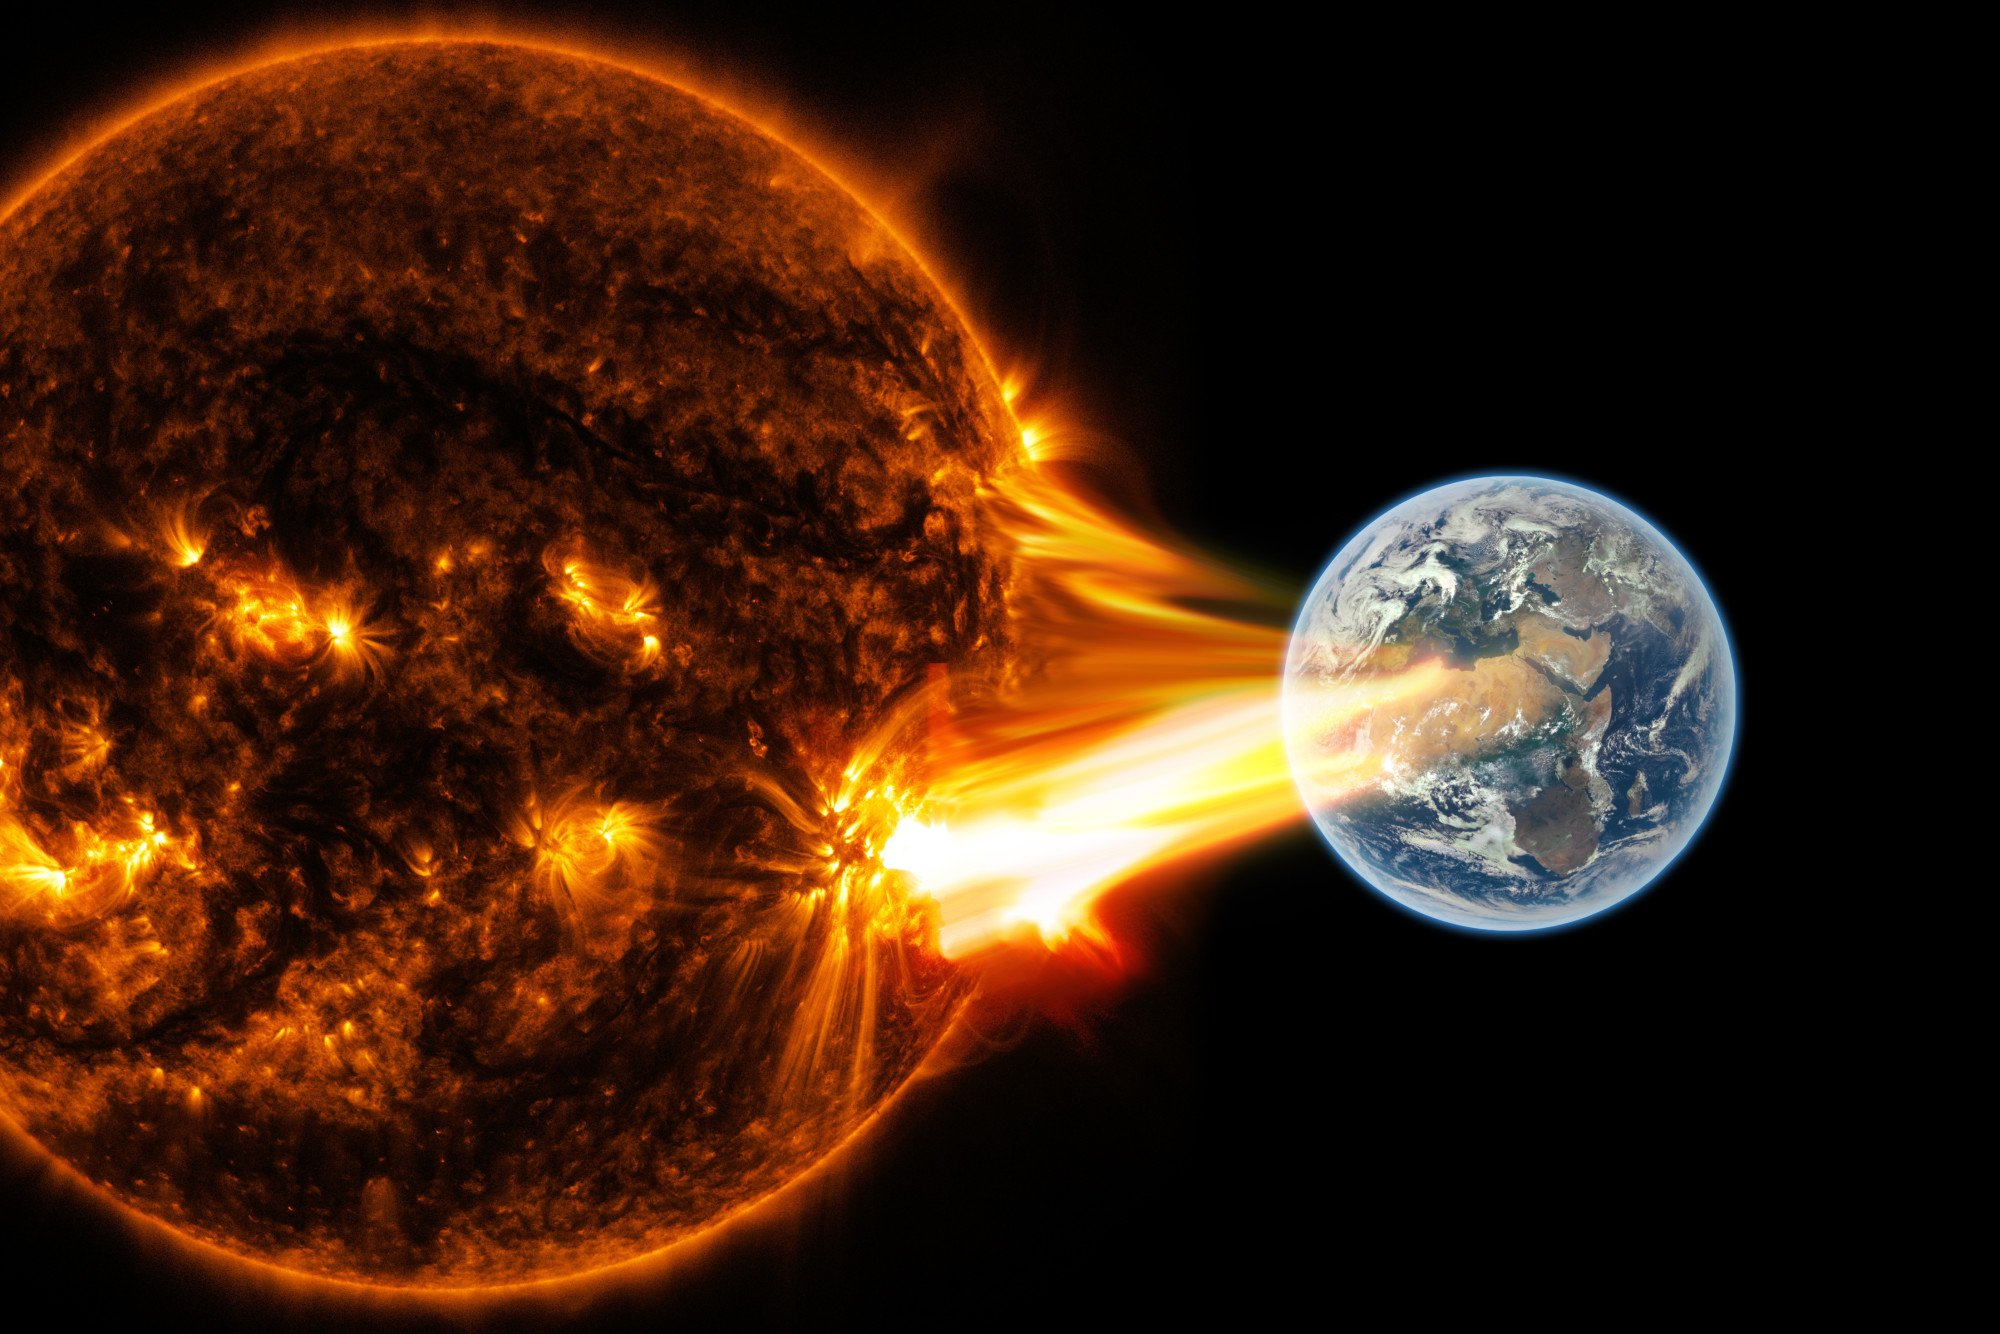 How to Prepare for the Devastating Impact of a Solar Storm